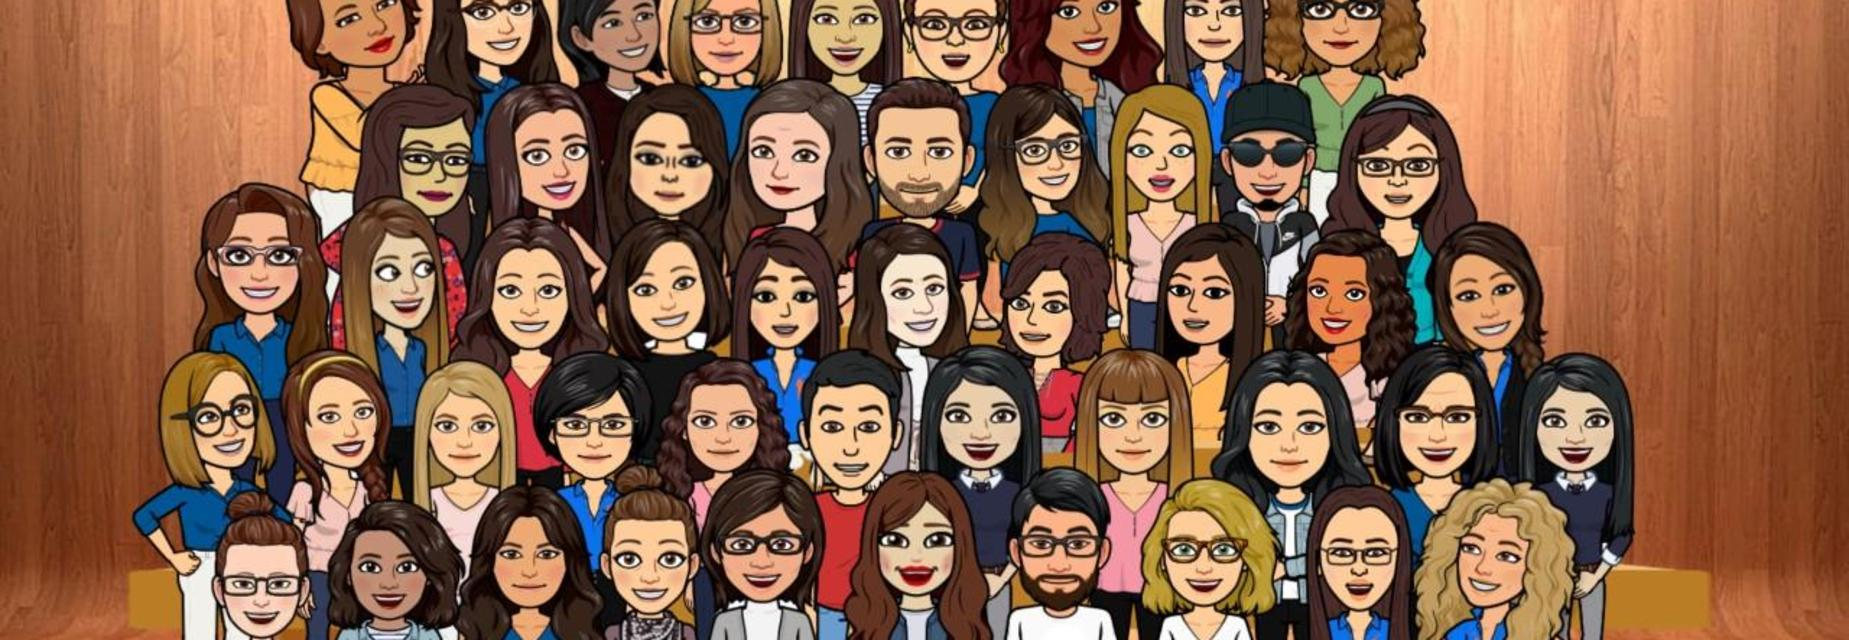 bitmoji staff picture